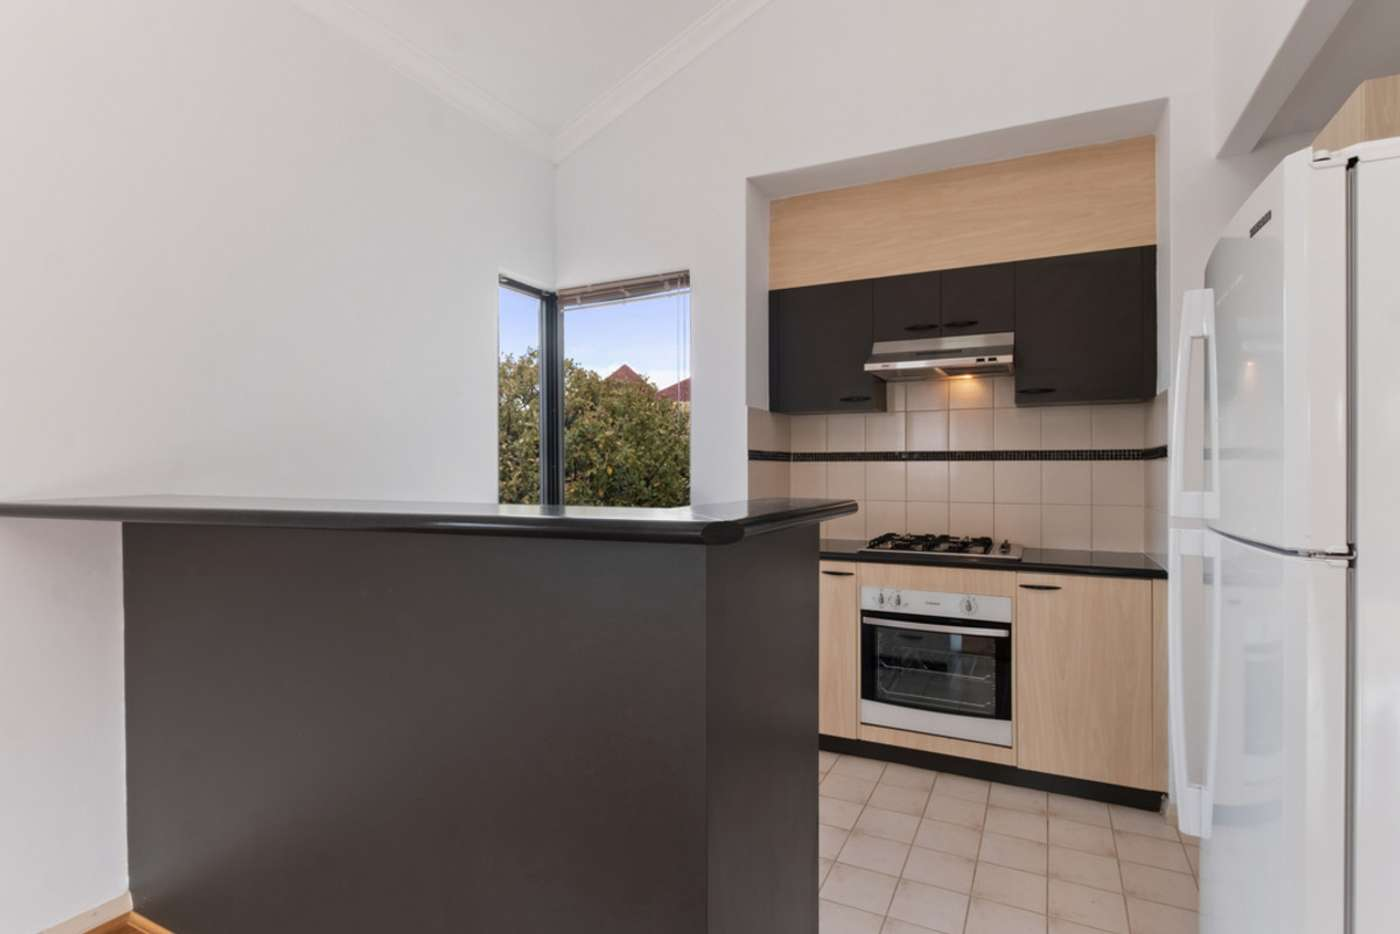 Fifth view of Homely apartment listing, 6/28 Bronte Street, East Perth WA 6004